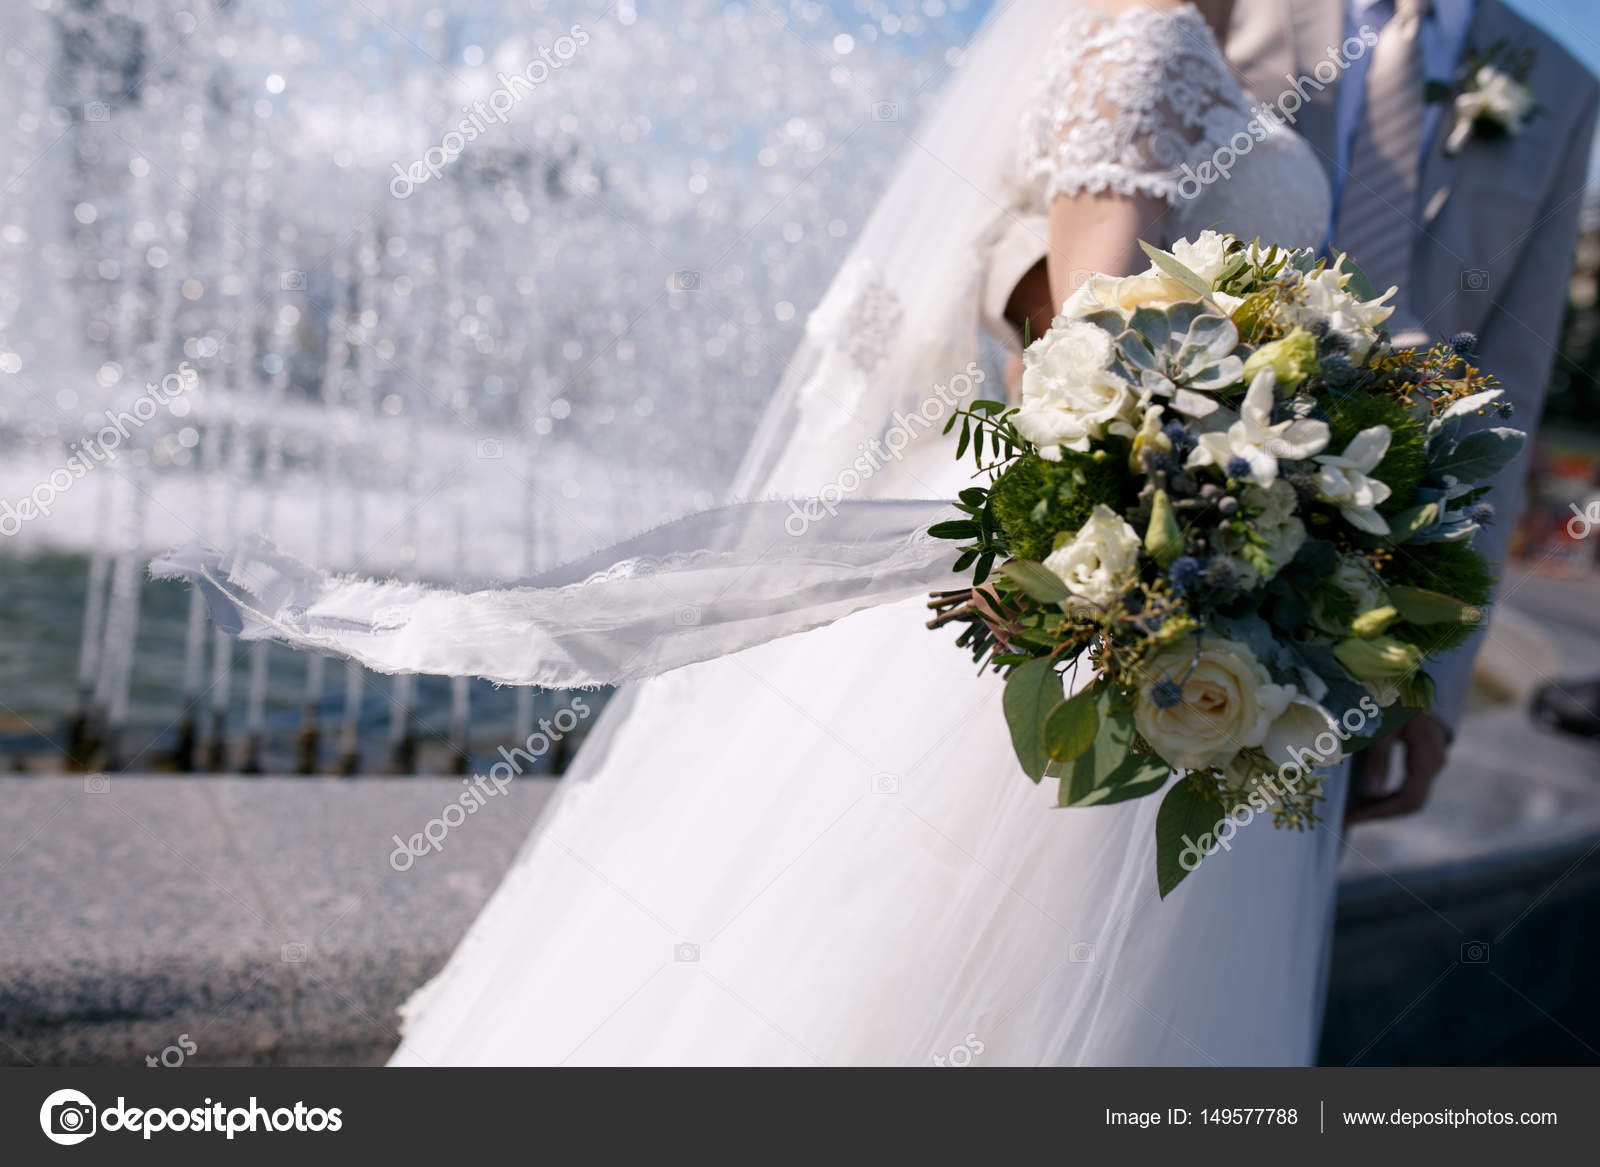 Green And White Wedding Bouquet In Hands Of The Bride With A